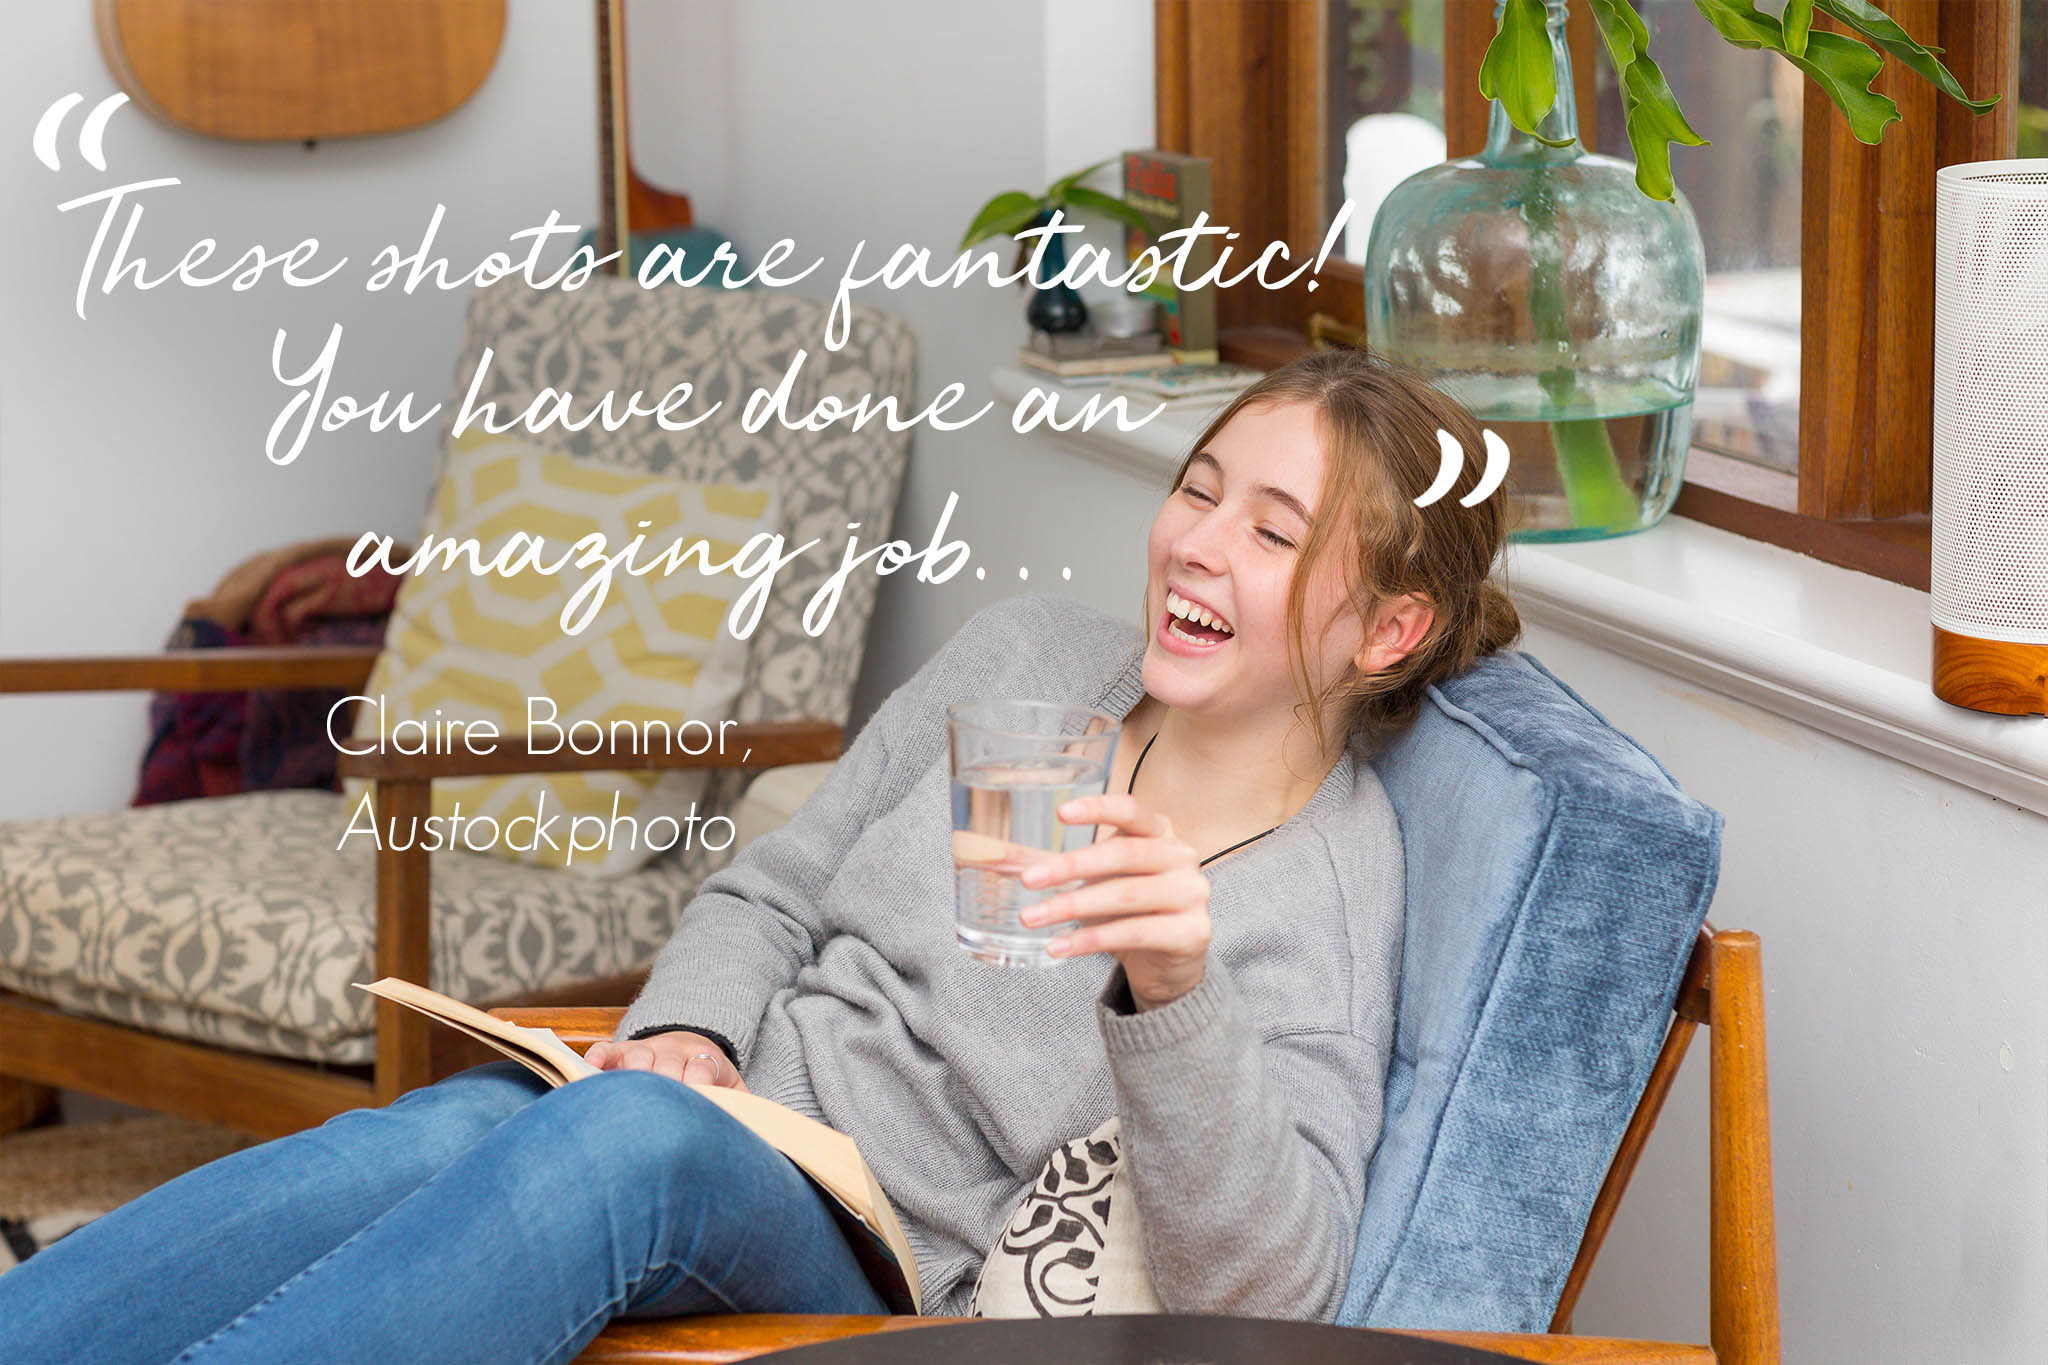 """Testimonial from Claire Bonnor, Austockphotography: """"These shots are fantastic! You have done an amazing job..."""""""